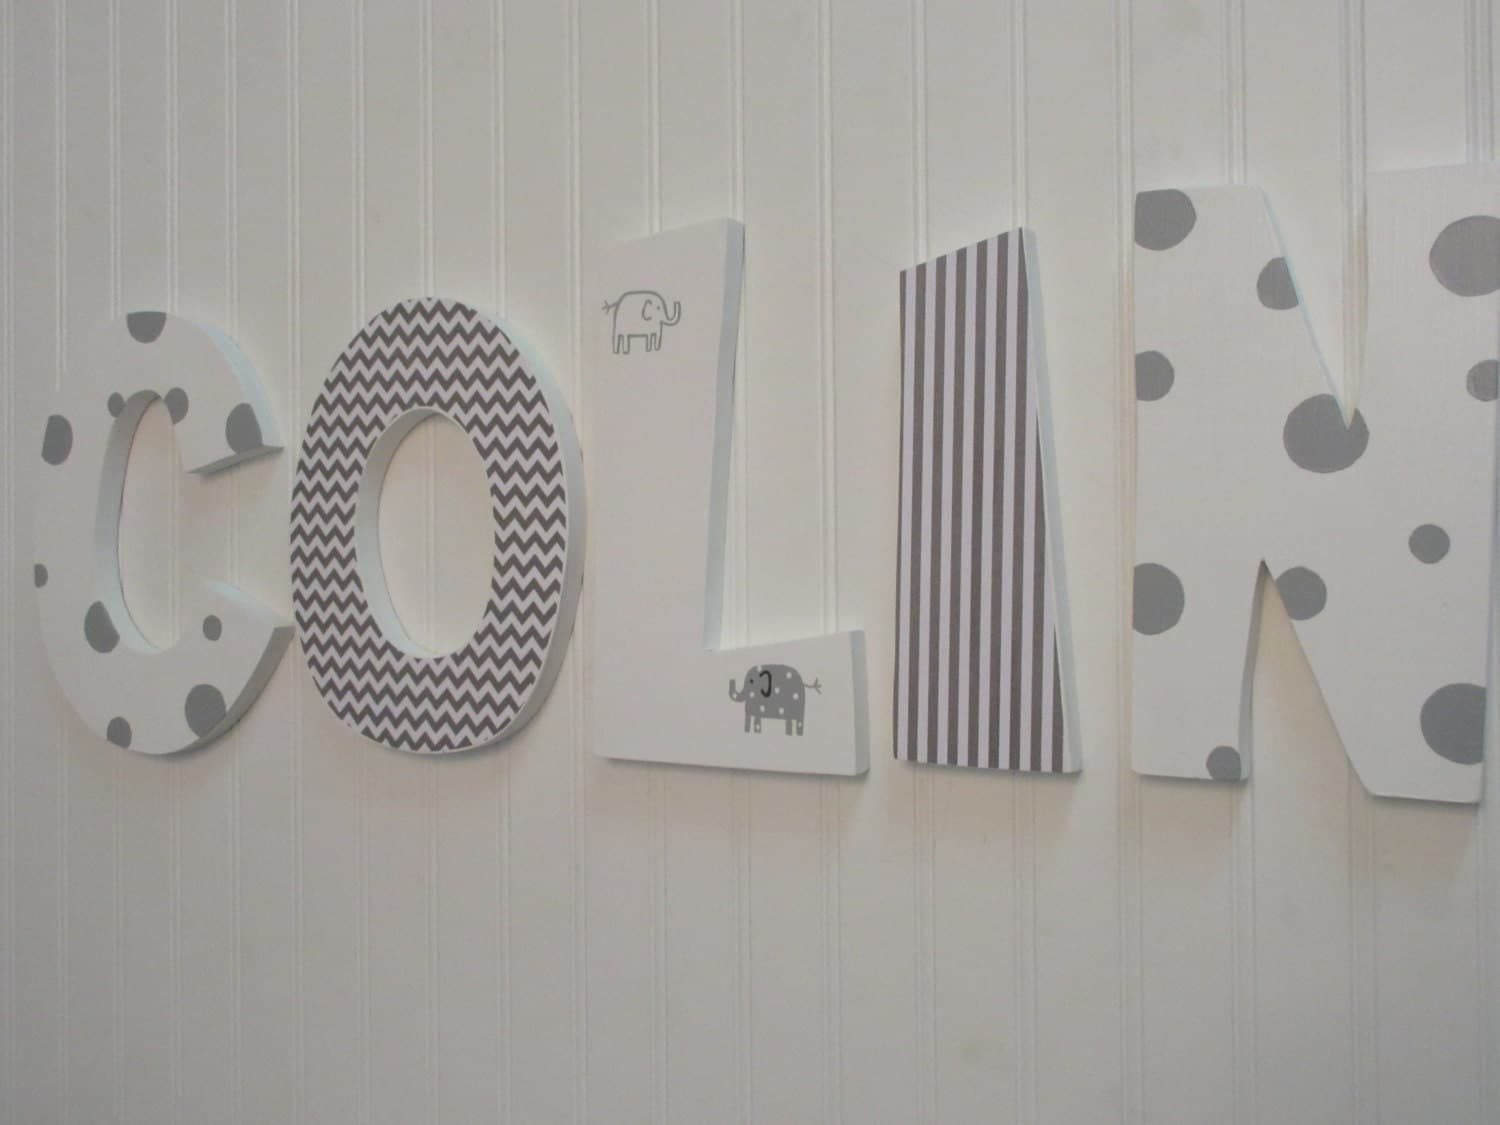 Hanging Nursery Letters White & Gray Nursery Letters Baby